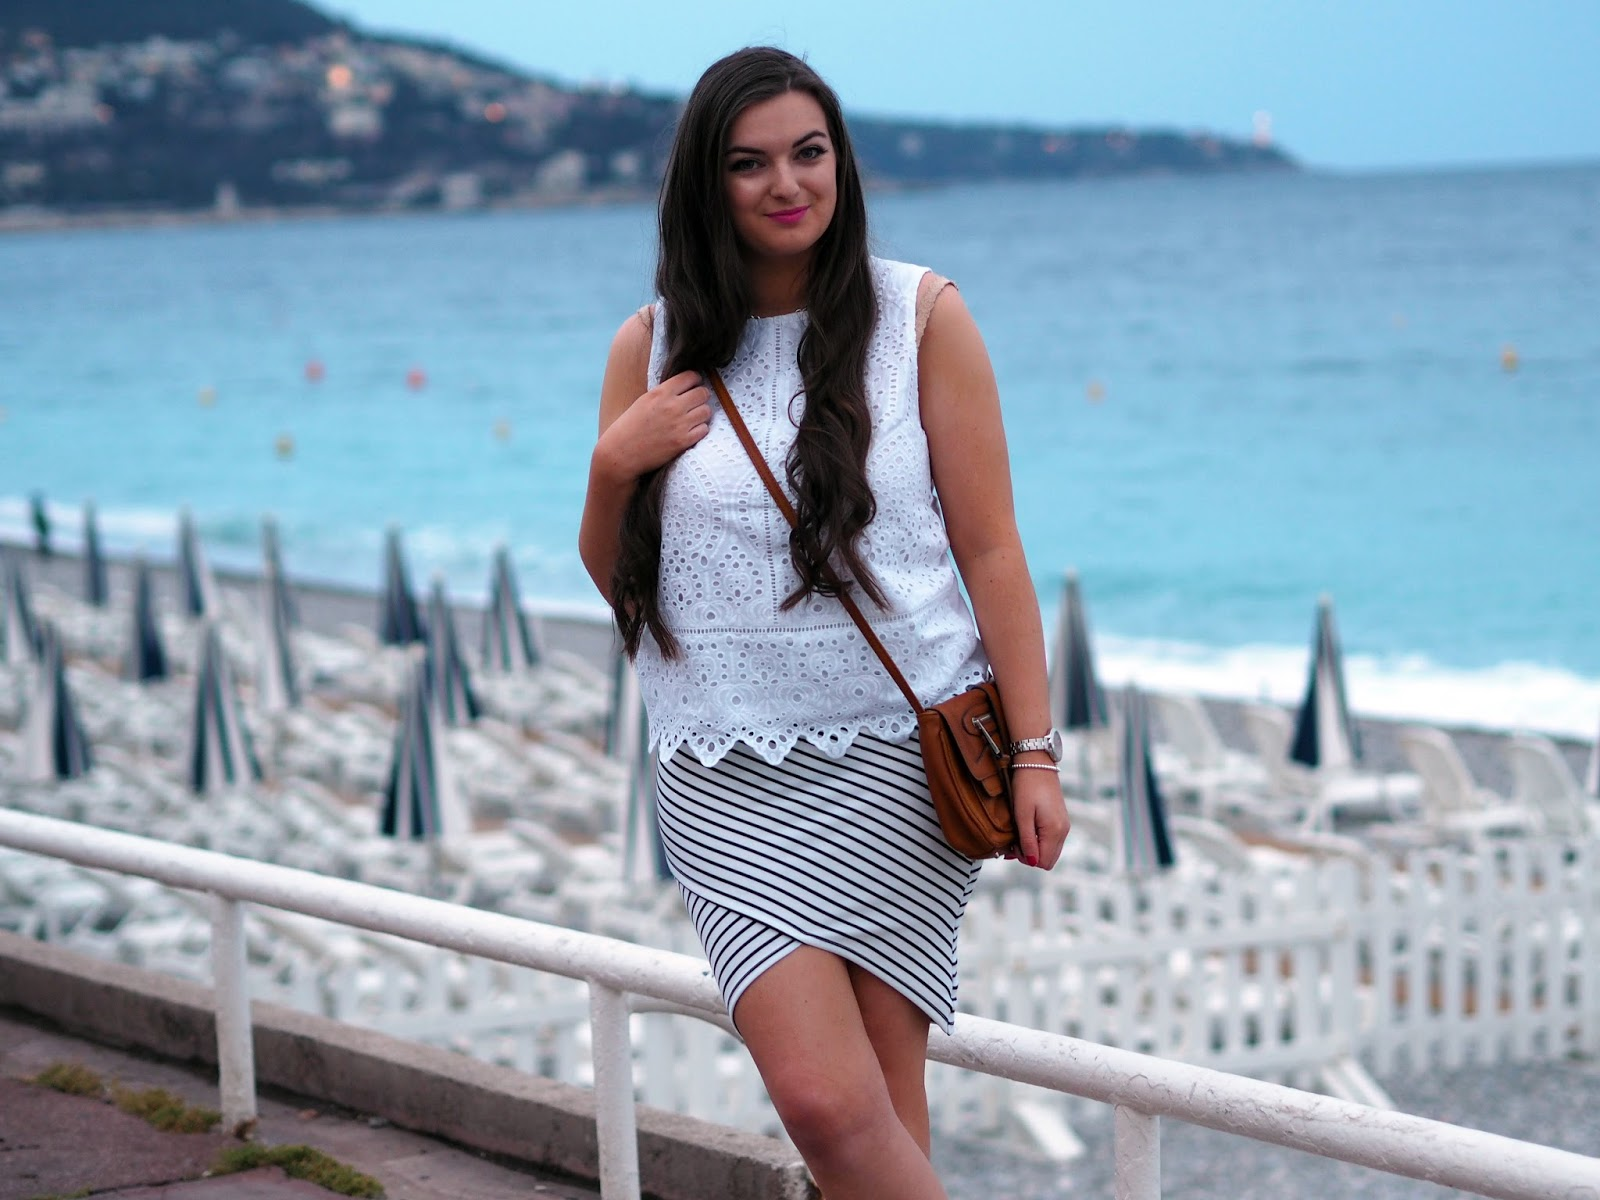 Sunset at Promenade Des Anglais Outfit - Rachel Nicole UK Blogger